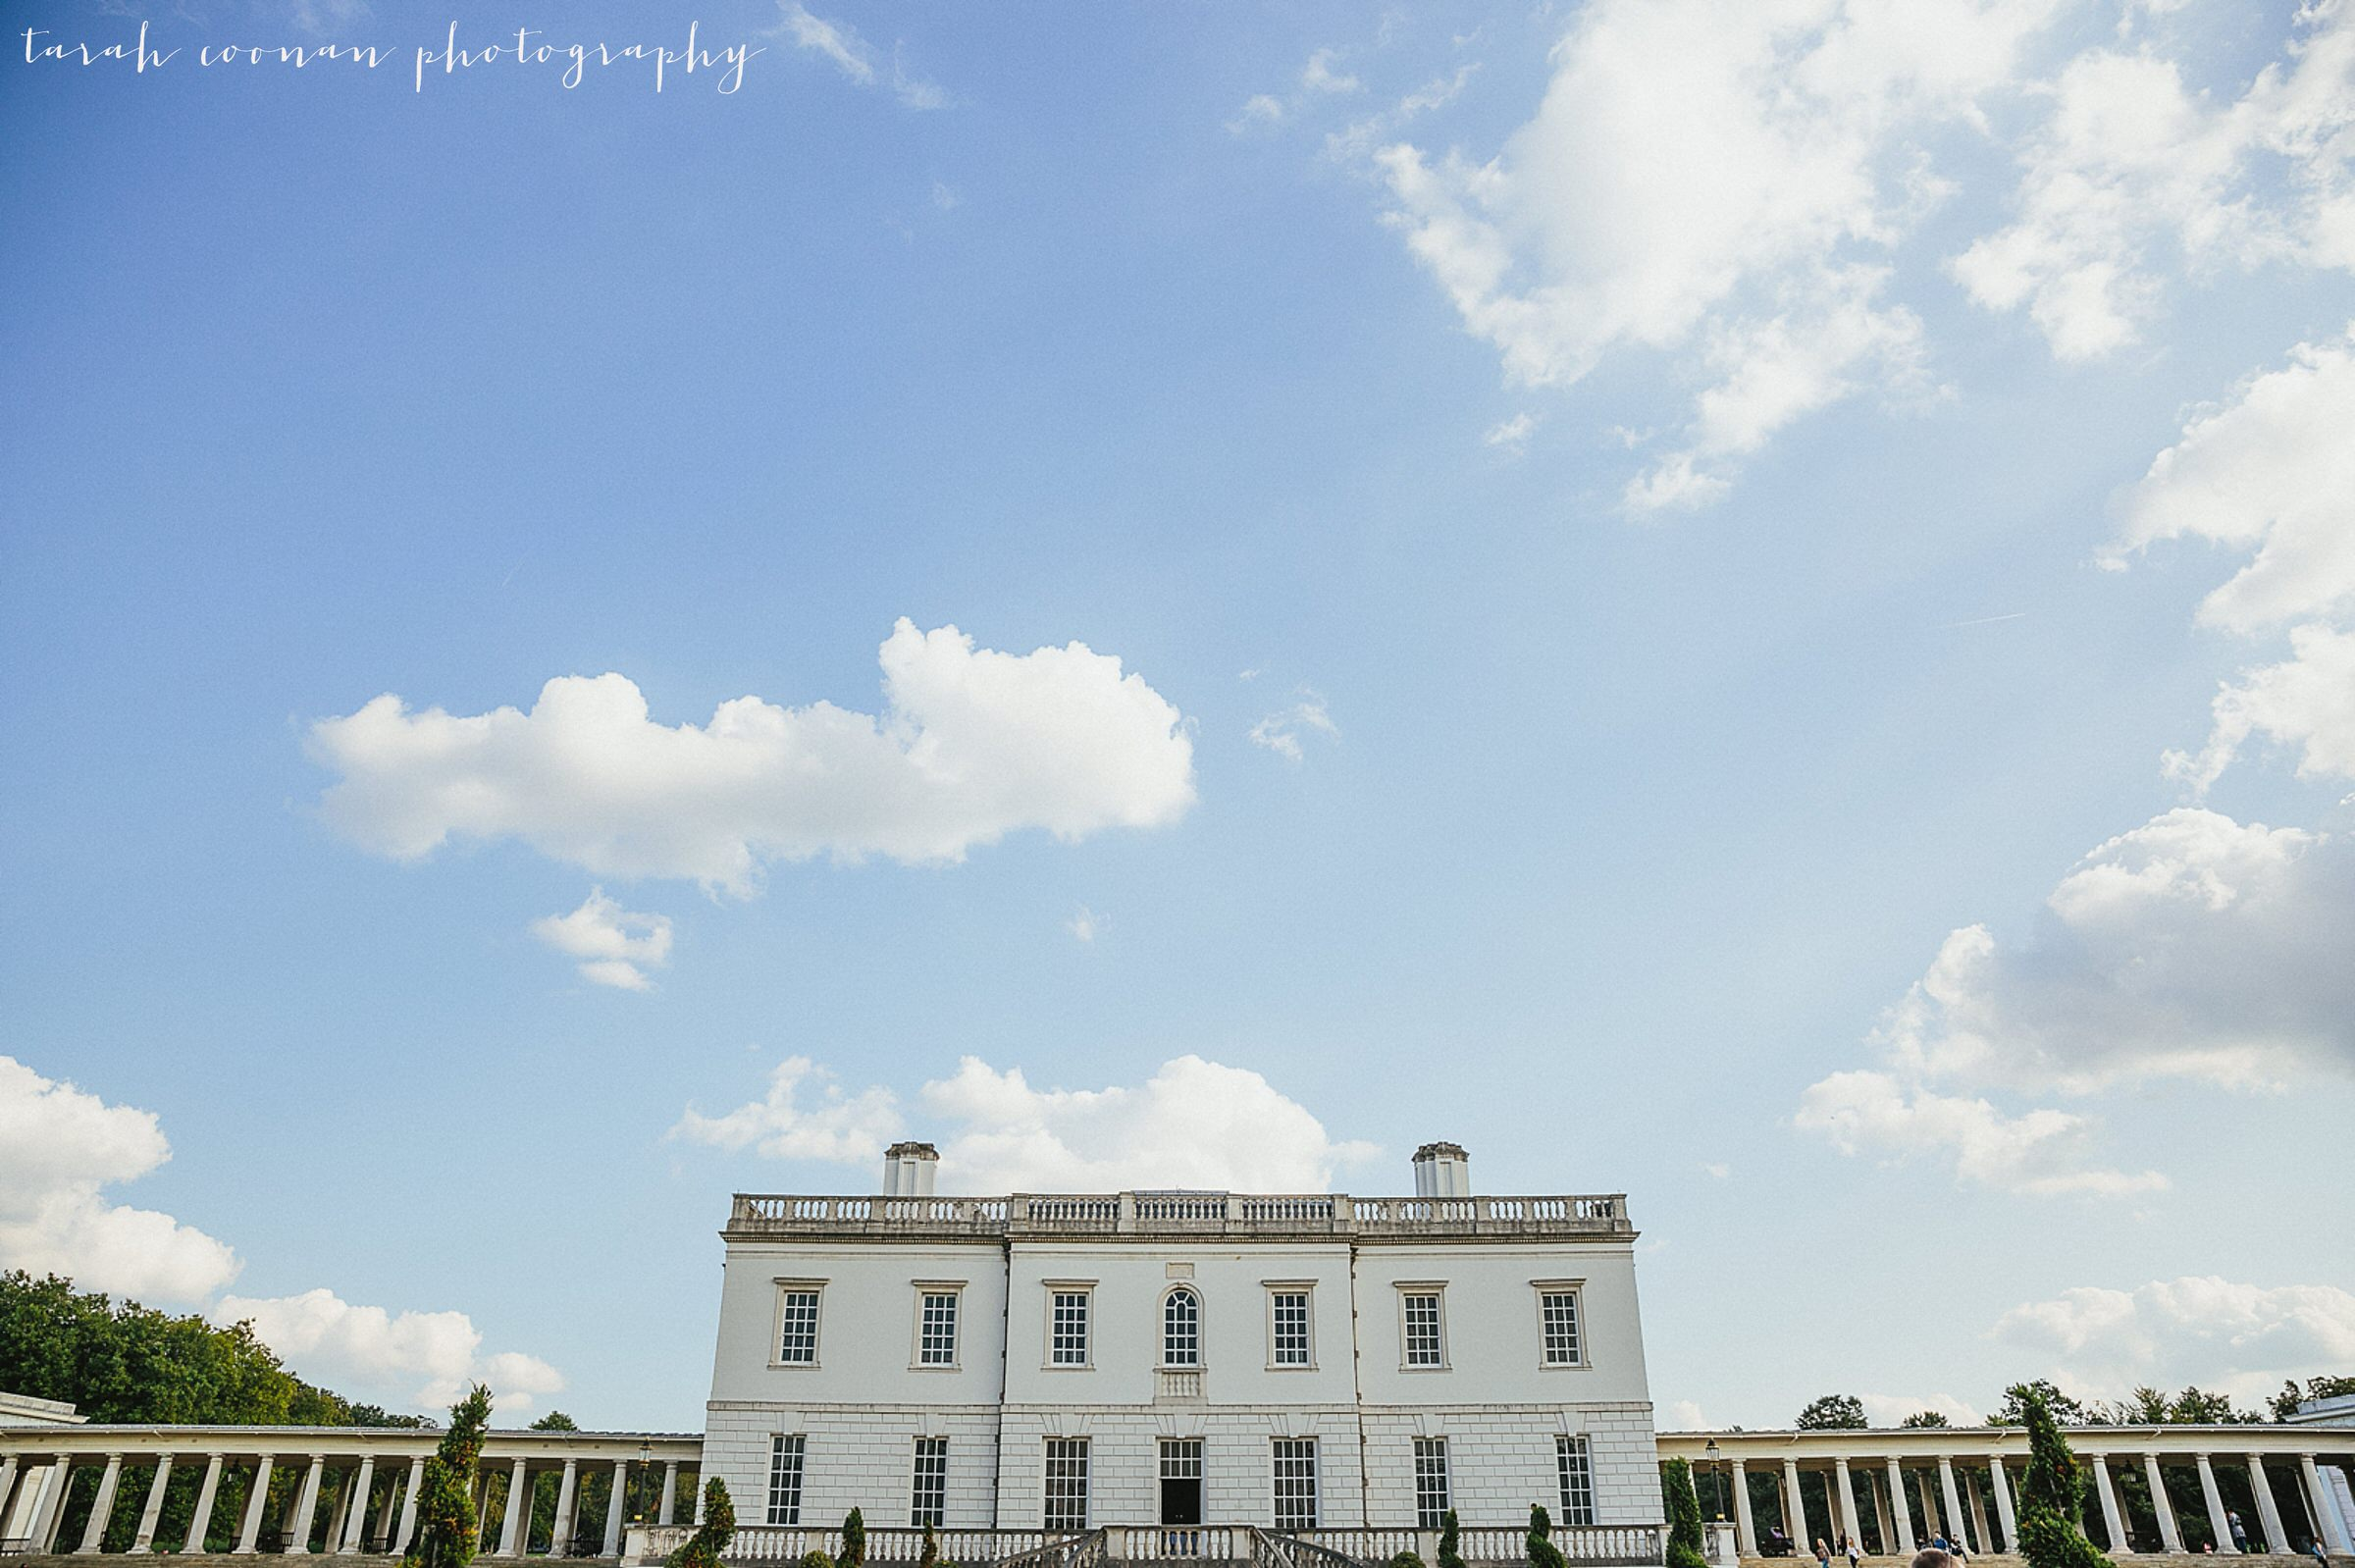 Greenwich wedding